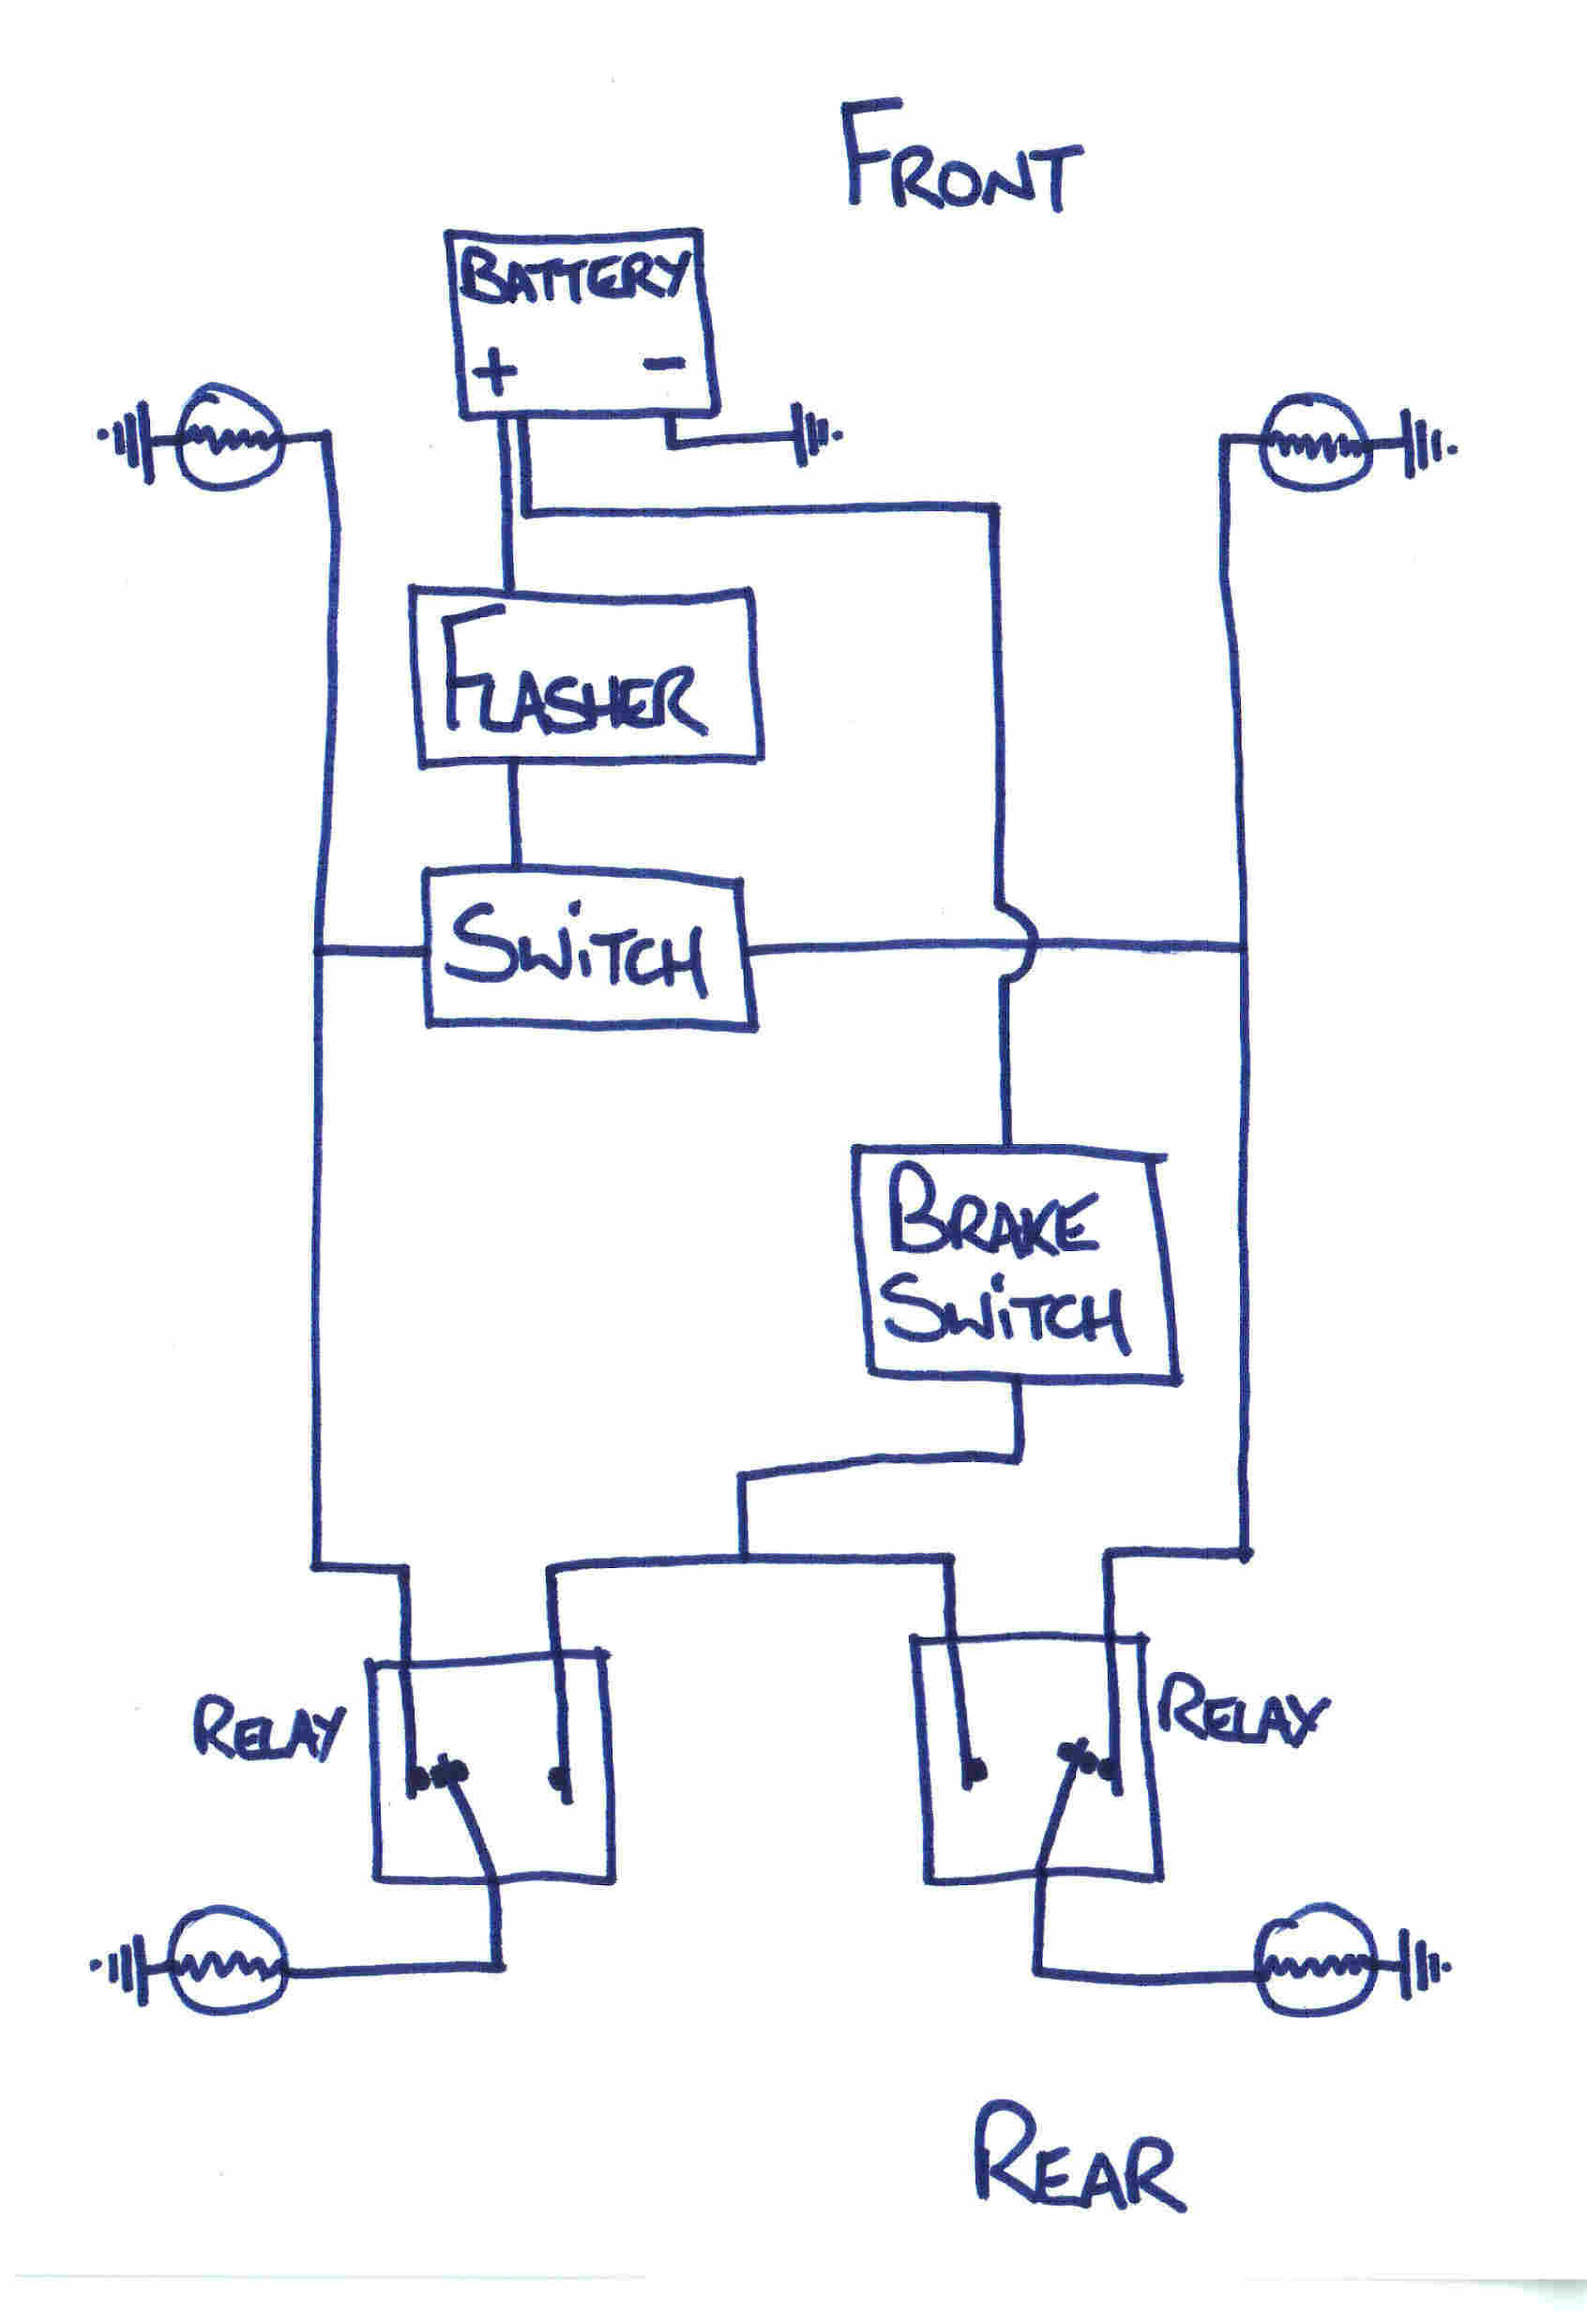 garys_flashers modern flasher circuits indicator wiring diagram at soozxer.org